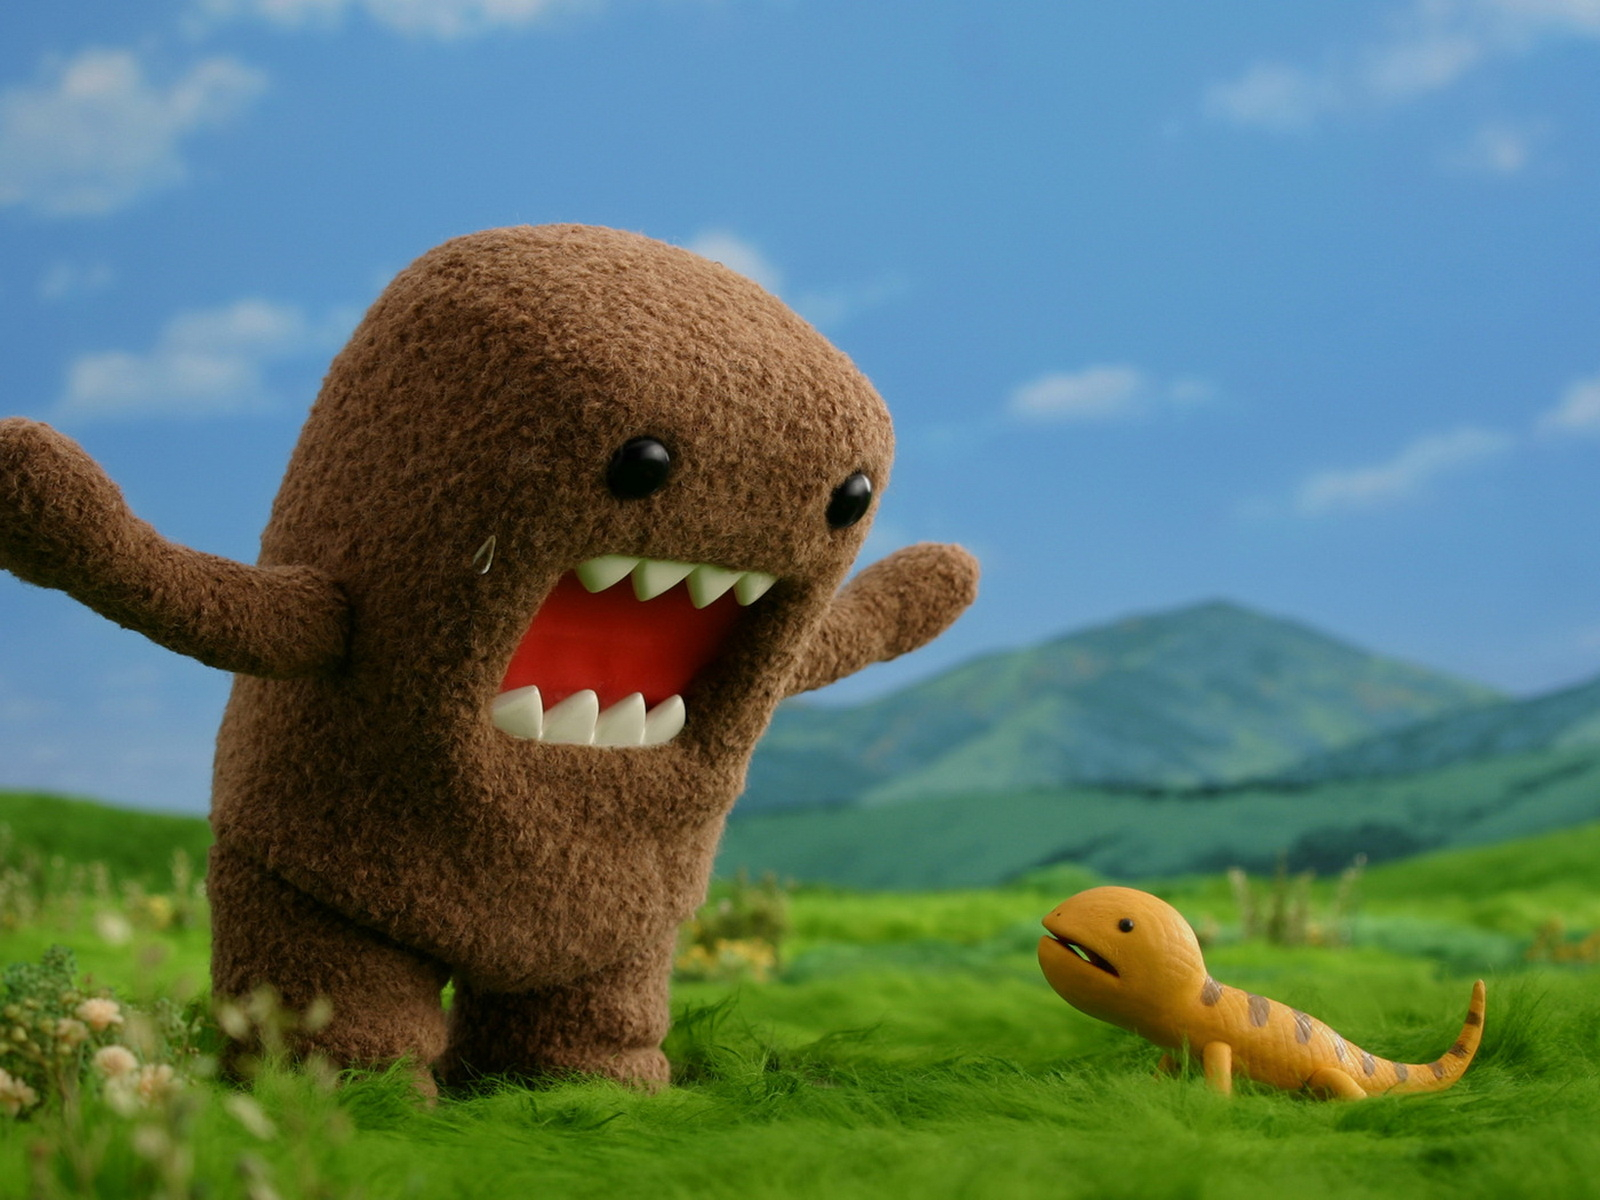 Cute Domo Wallpaper - WallpaperSafari